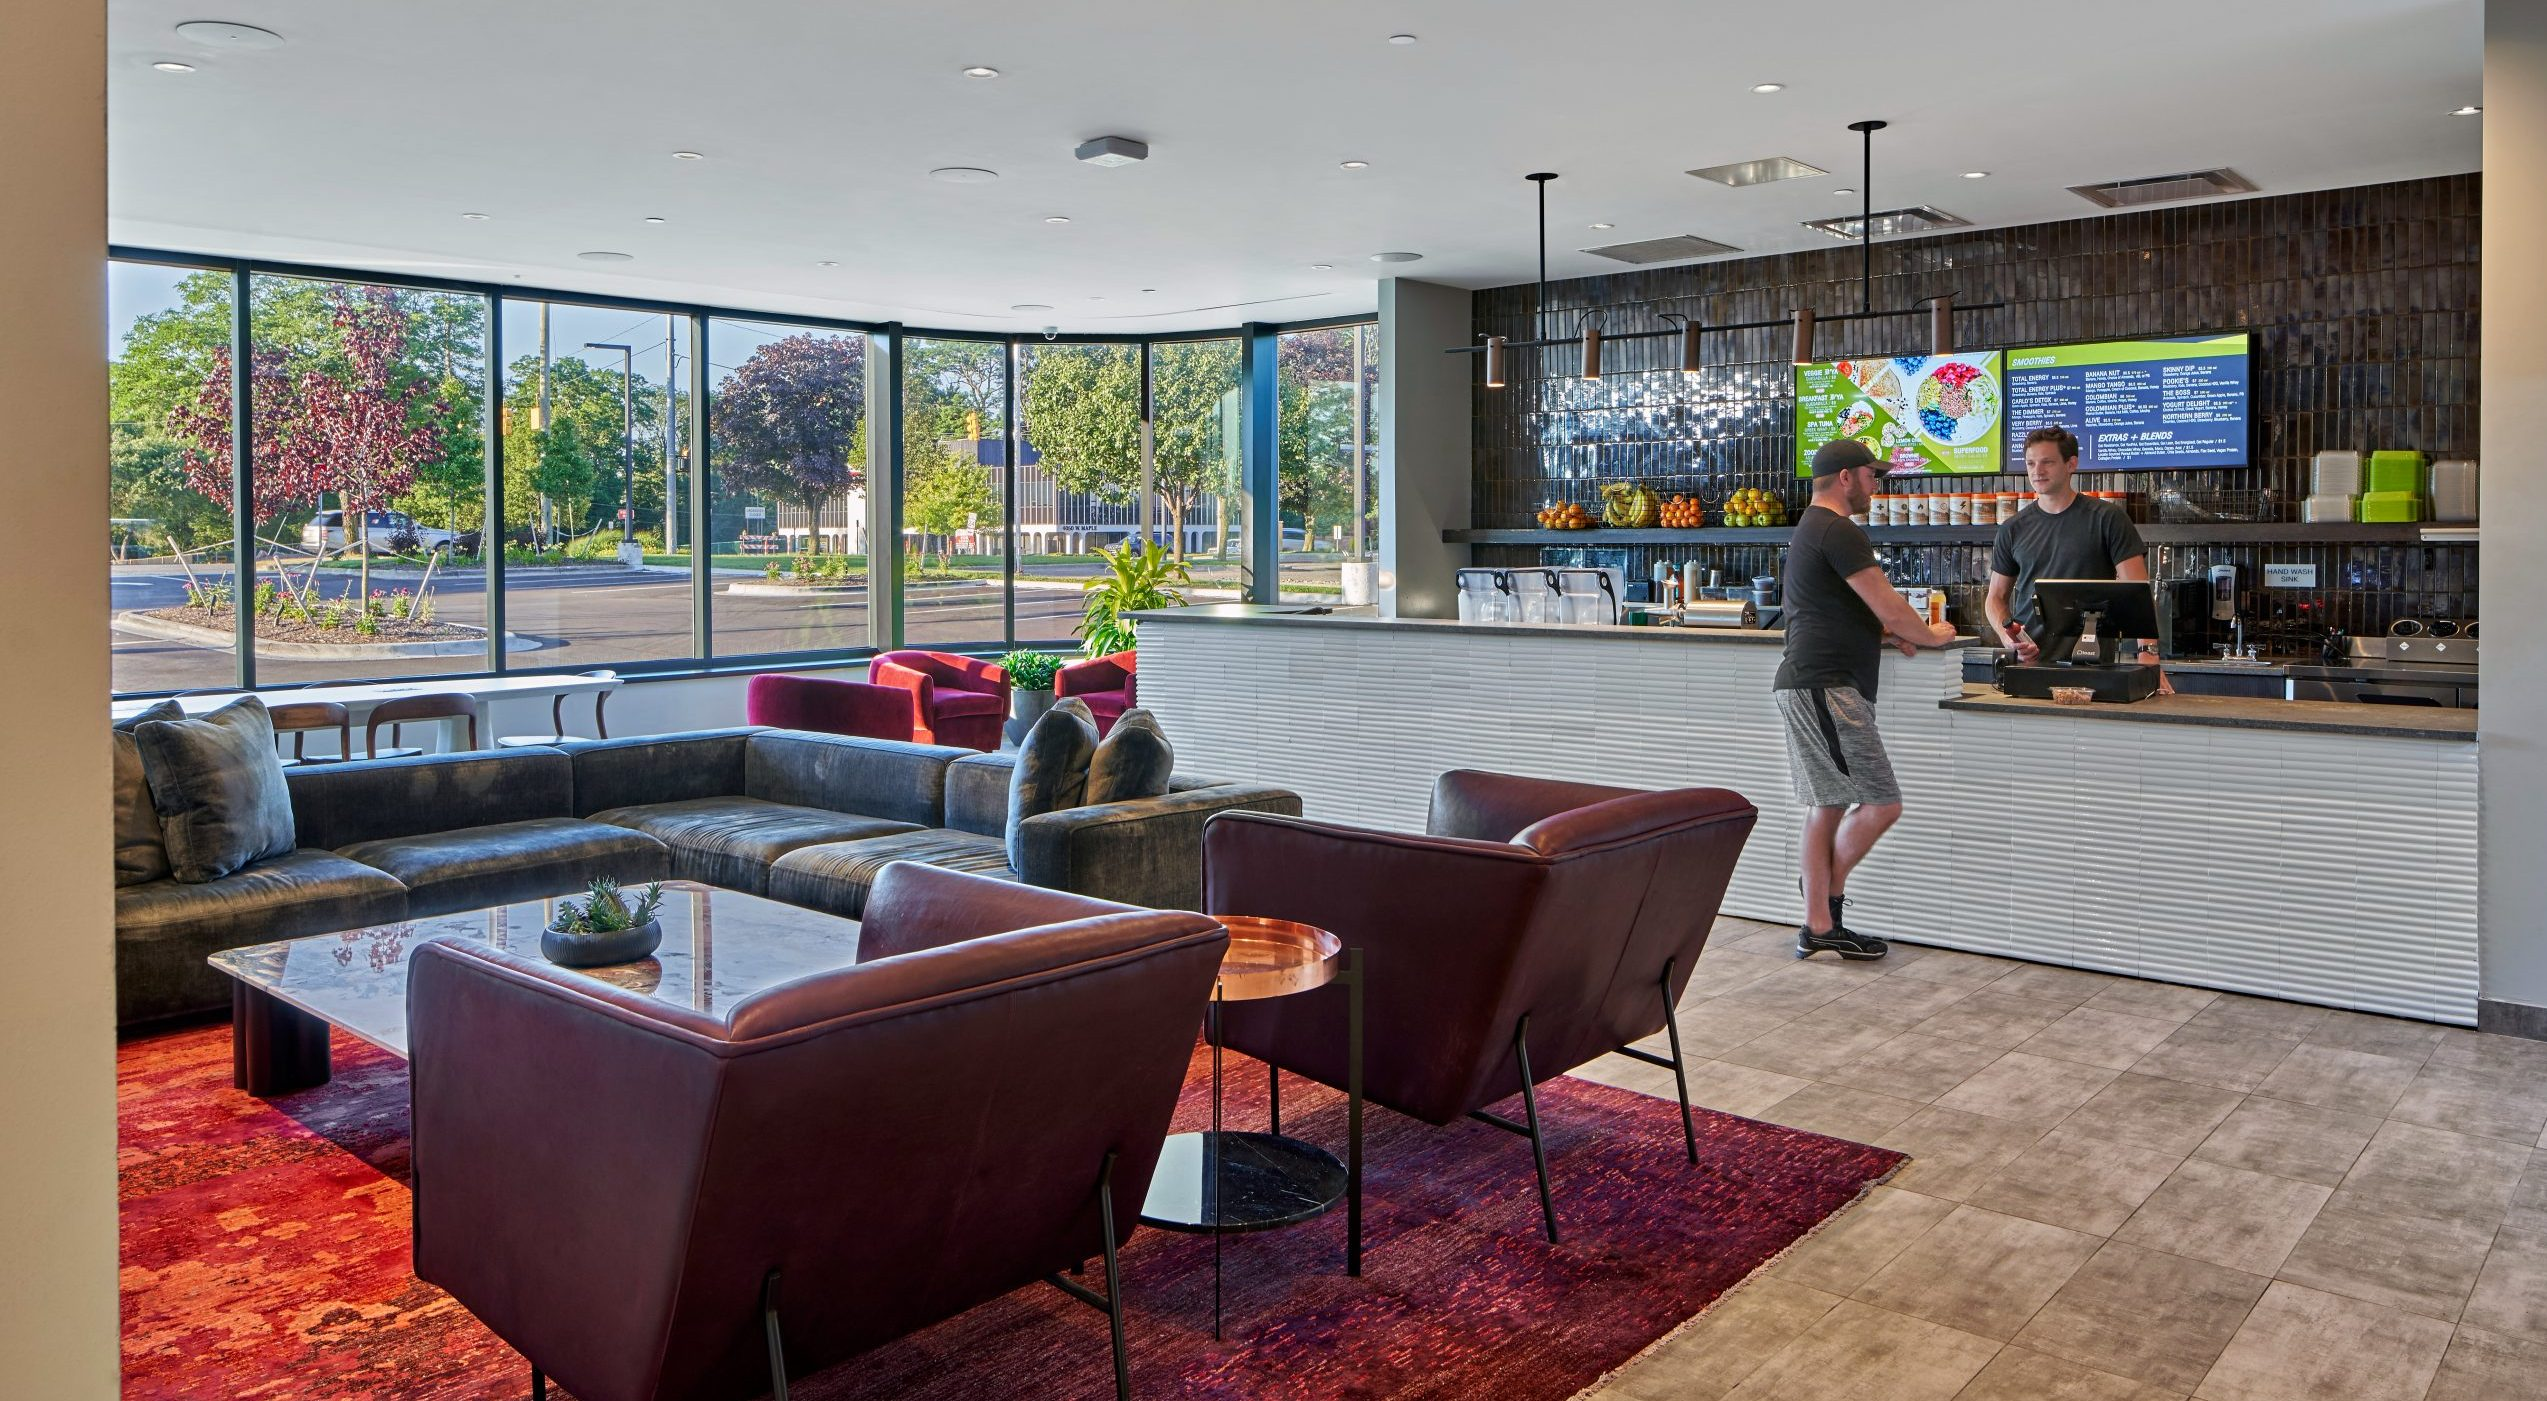 View of cafe and dining lounge at Equinox Fitness Club Bloomfield Hills Project in Michigan Architecture and Interior Design